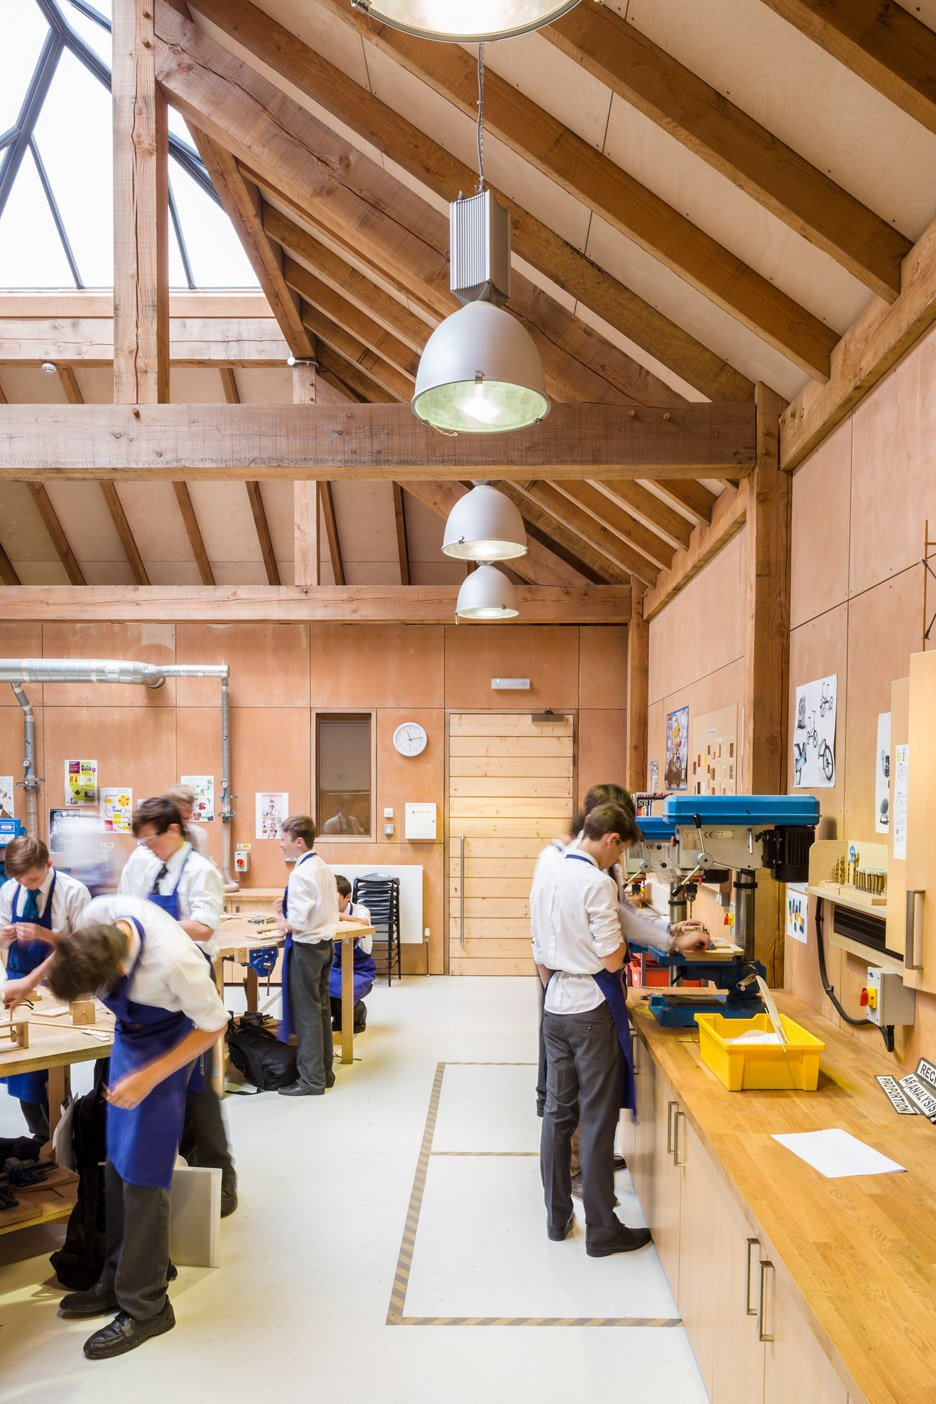 Design and Technology block at St James's School by Squire and Partners architects.